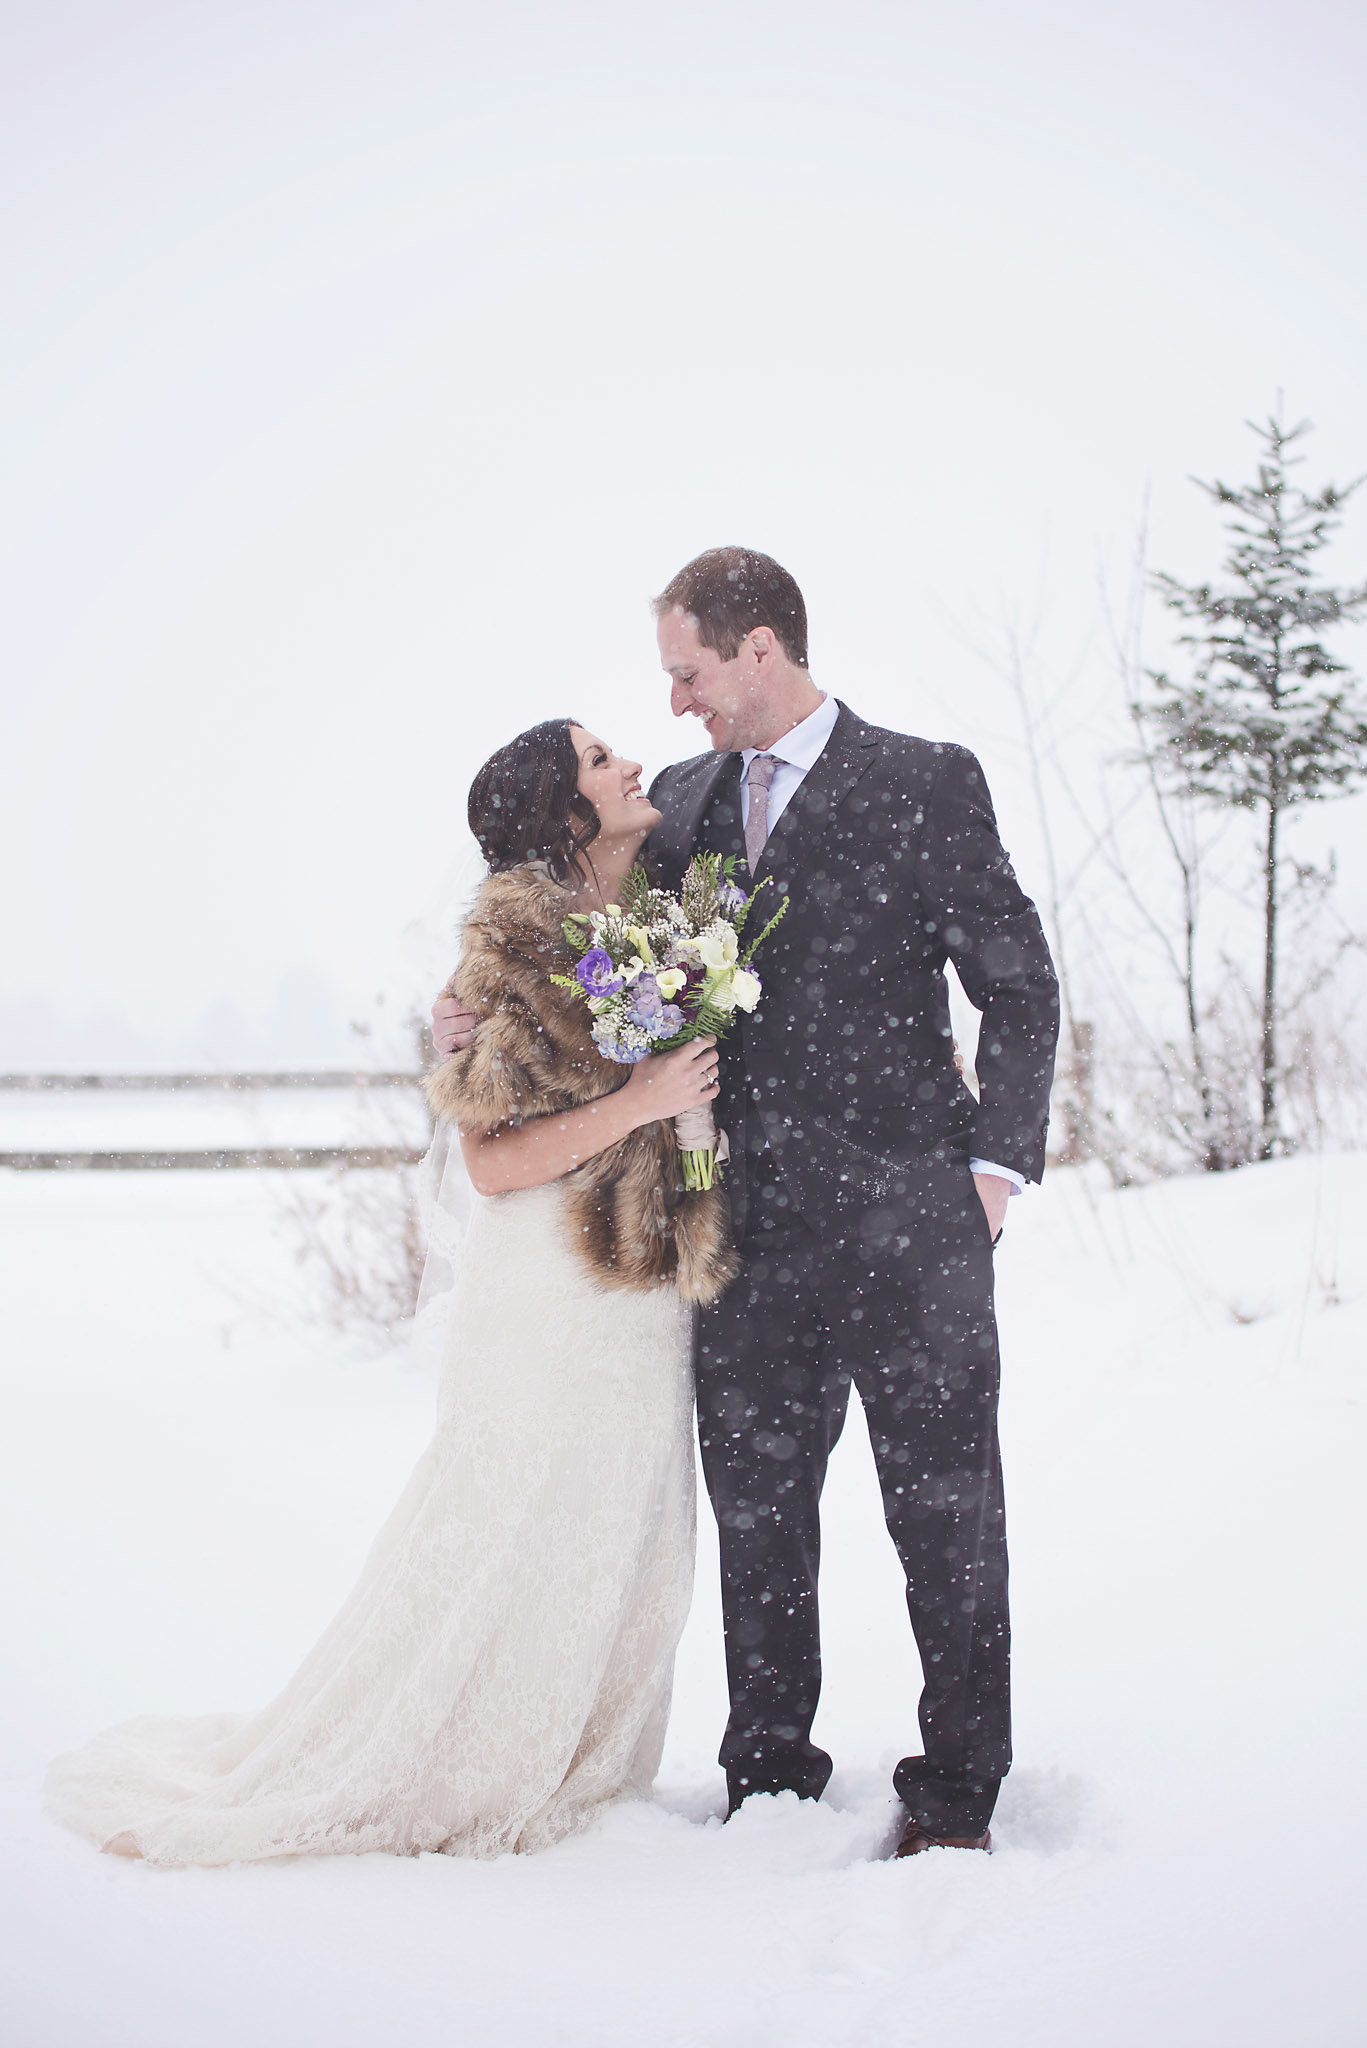 winter wedding in Vermont, snowy wedding, bride and groom first look